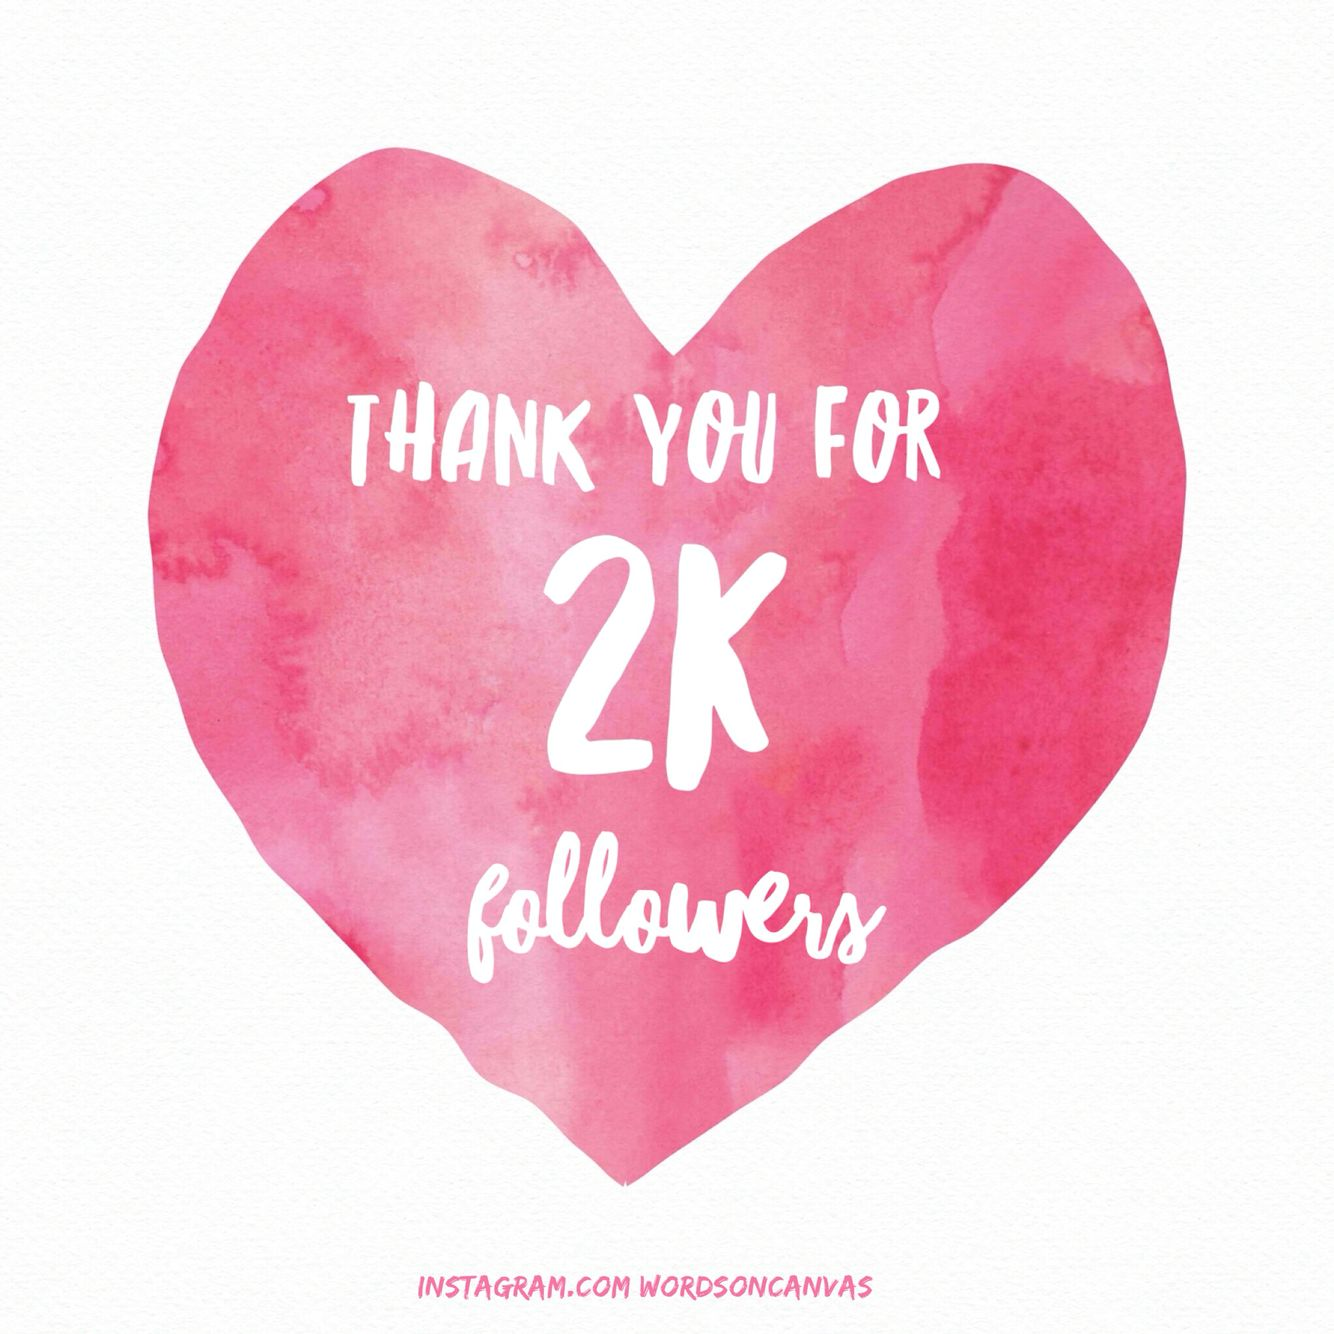 Thank You For 2K Followers On Instagram!